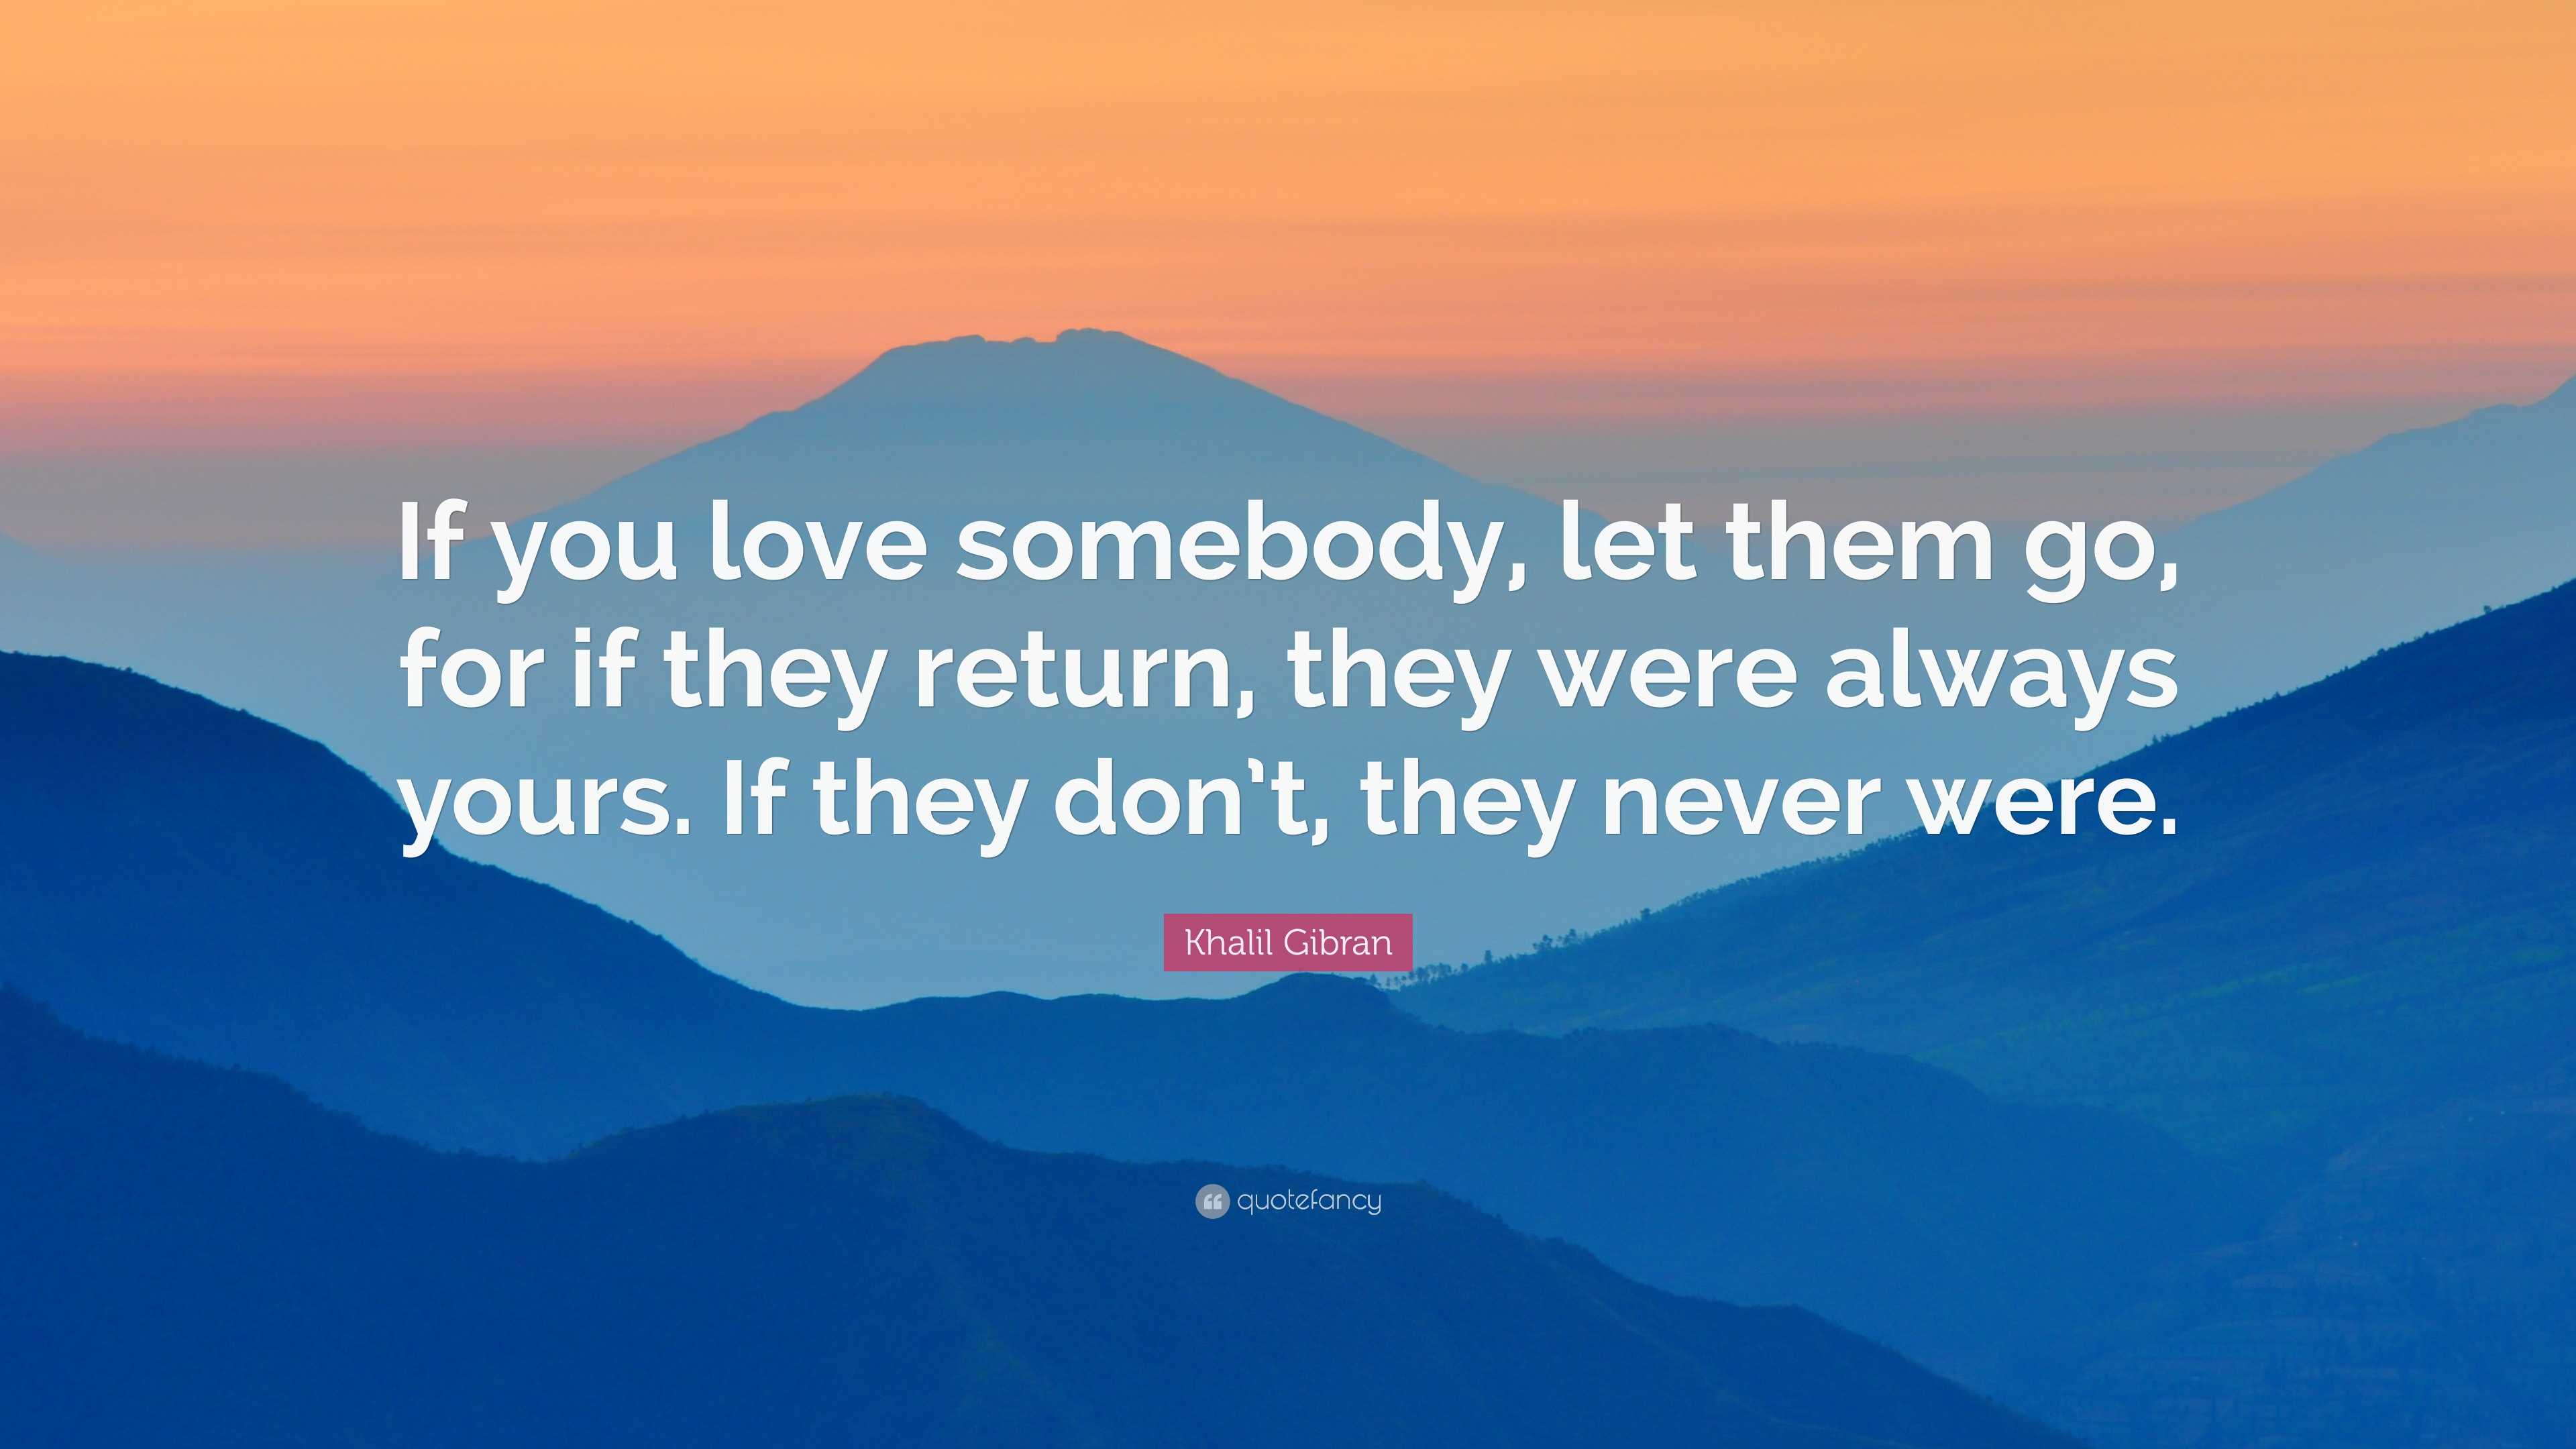 Khalil Gibran Quote: If you love somebody, let them go